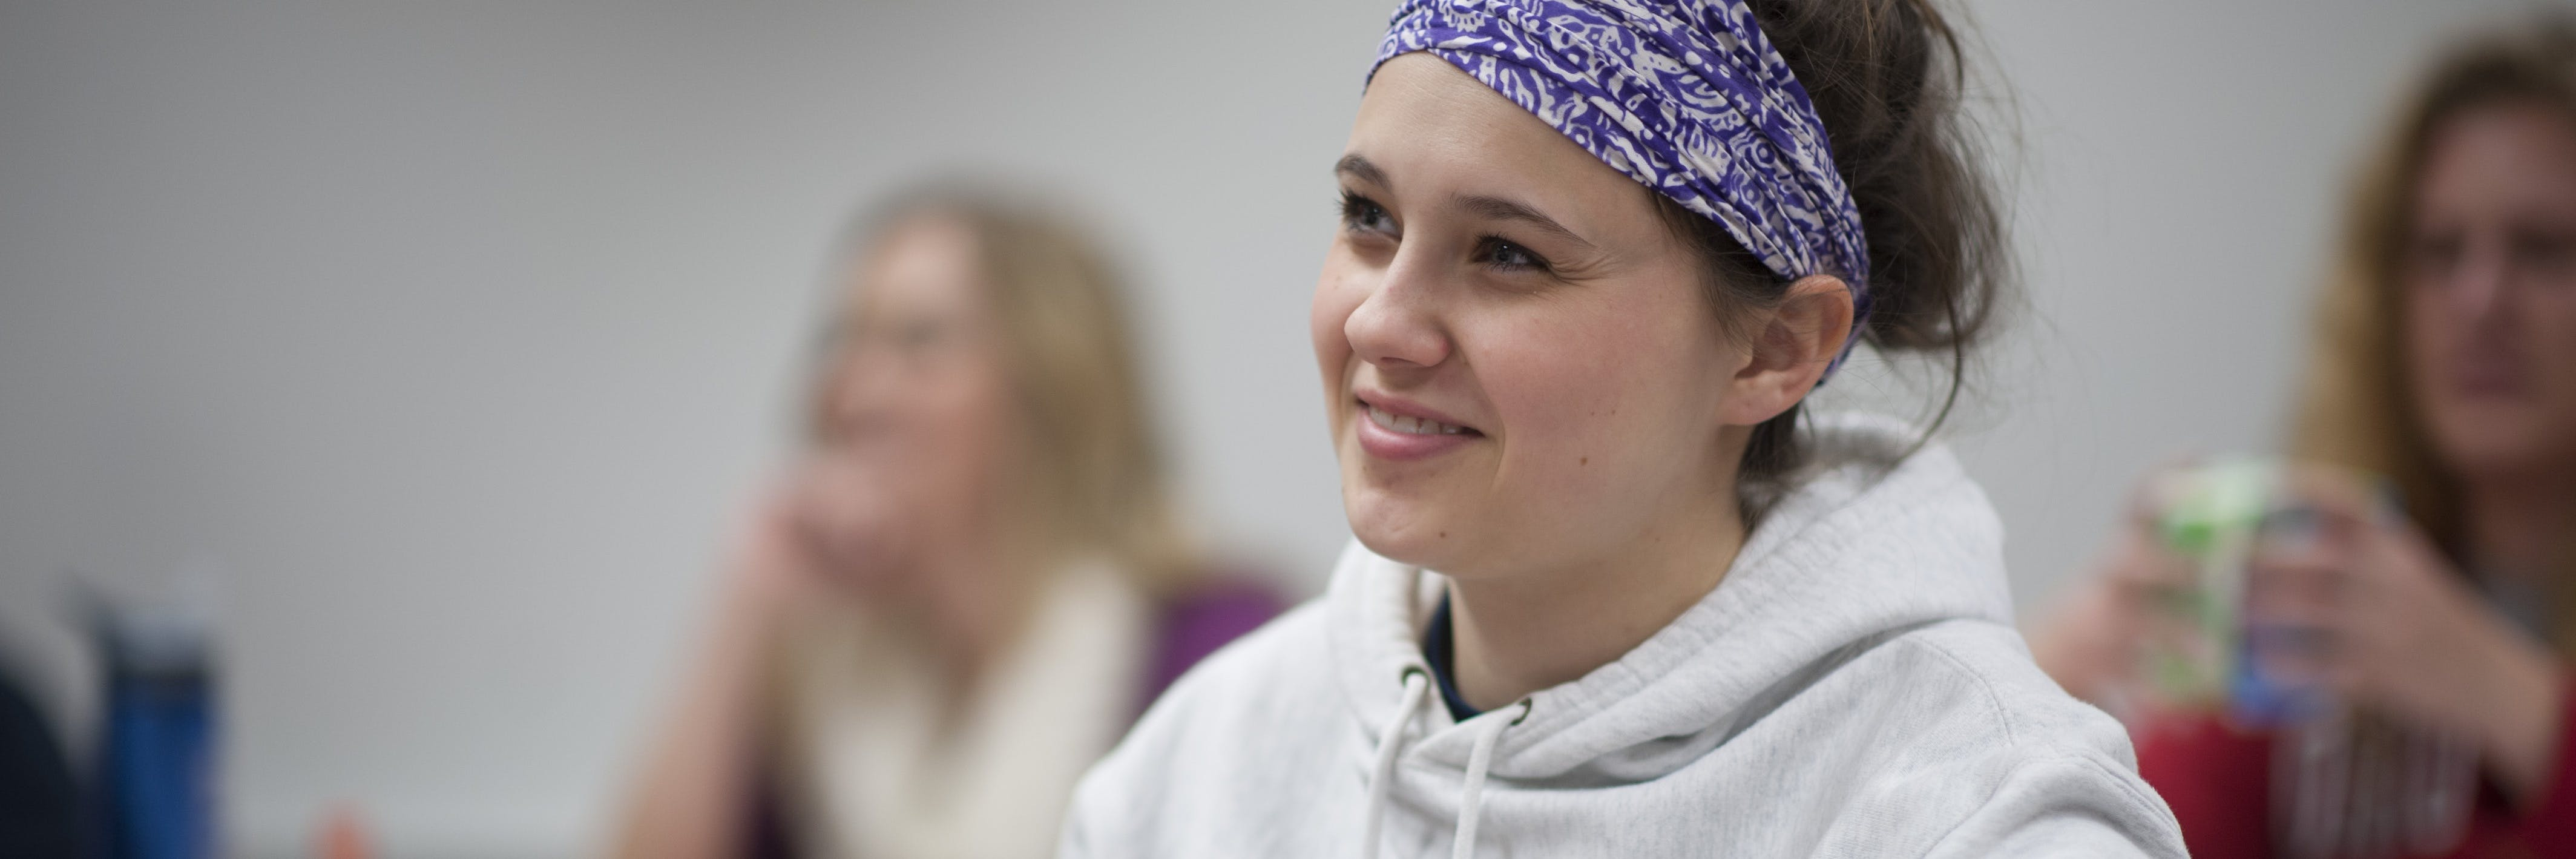 A student smiling in class